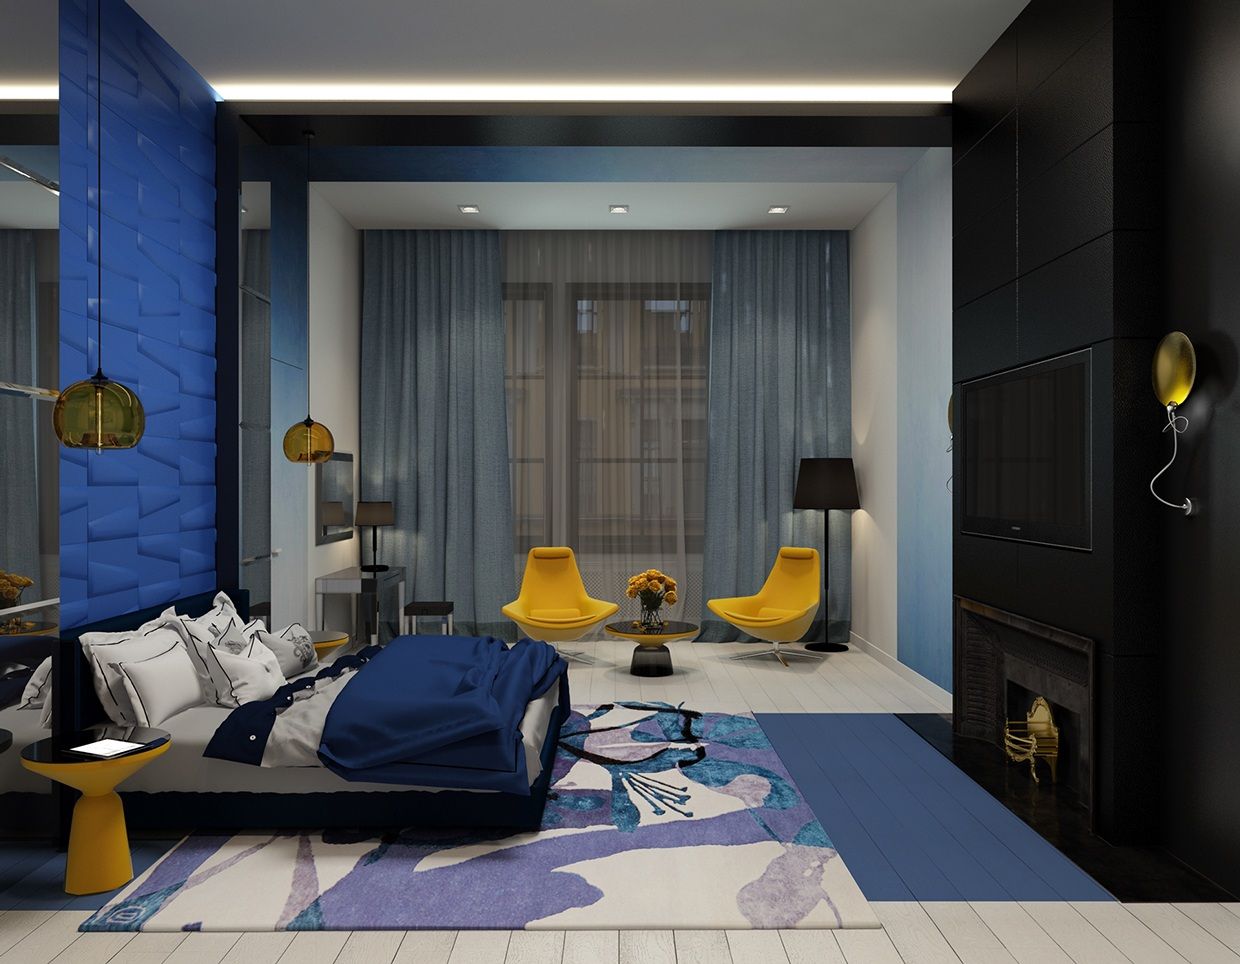 mesmerizing 20 blue bedroom accent wall ideas decorating blue bedroom accent wall interior design ideas